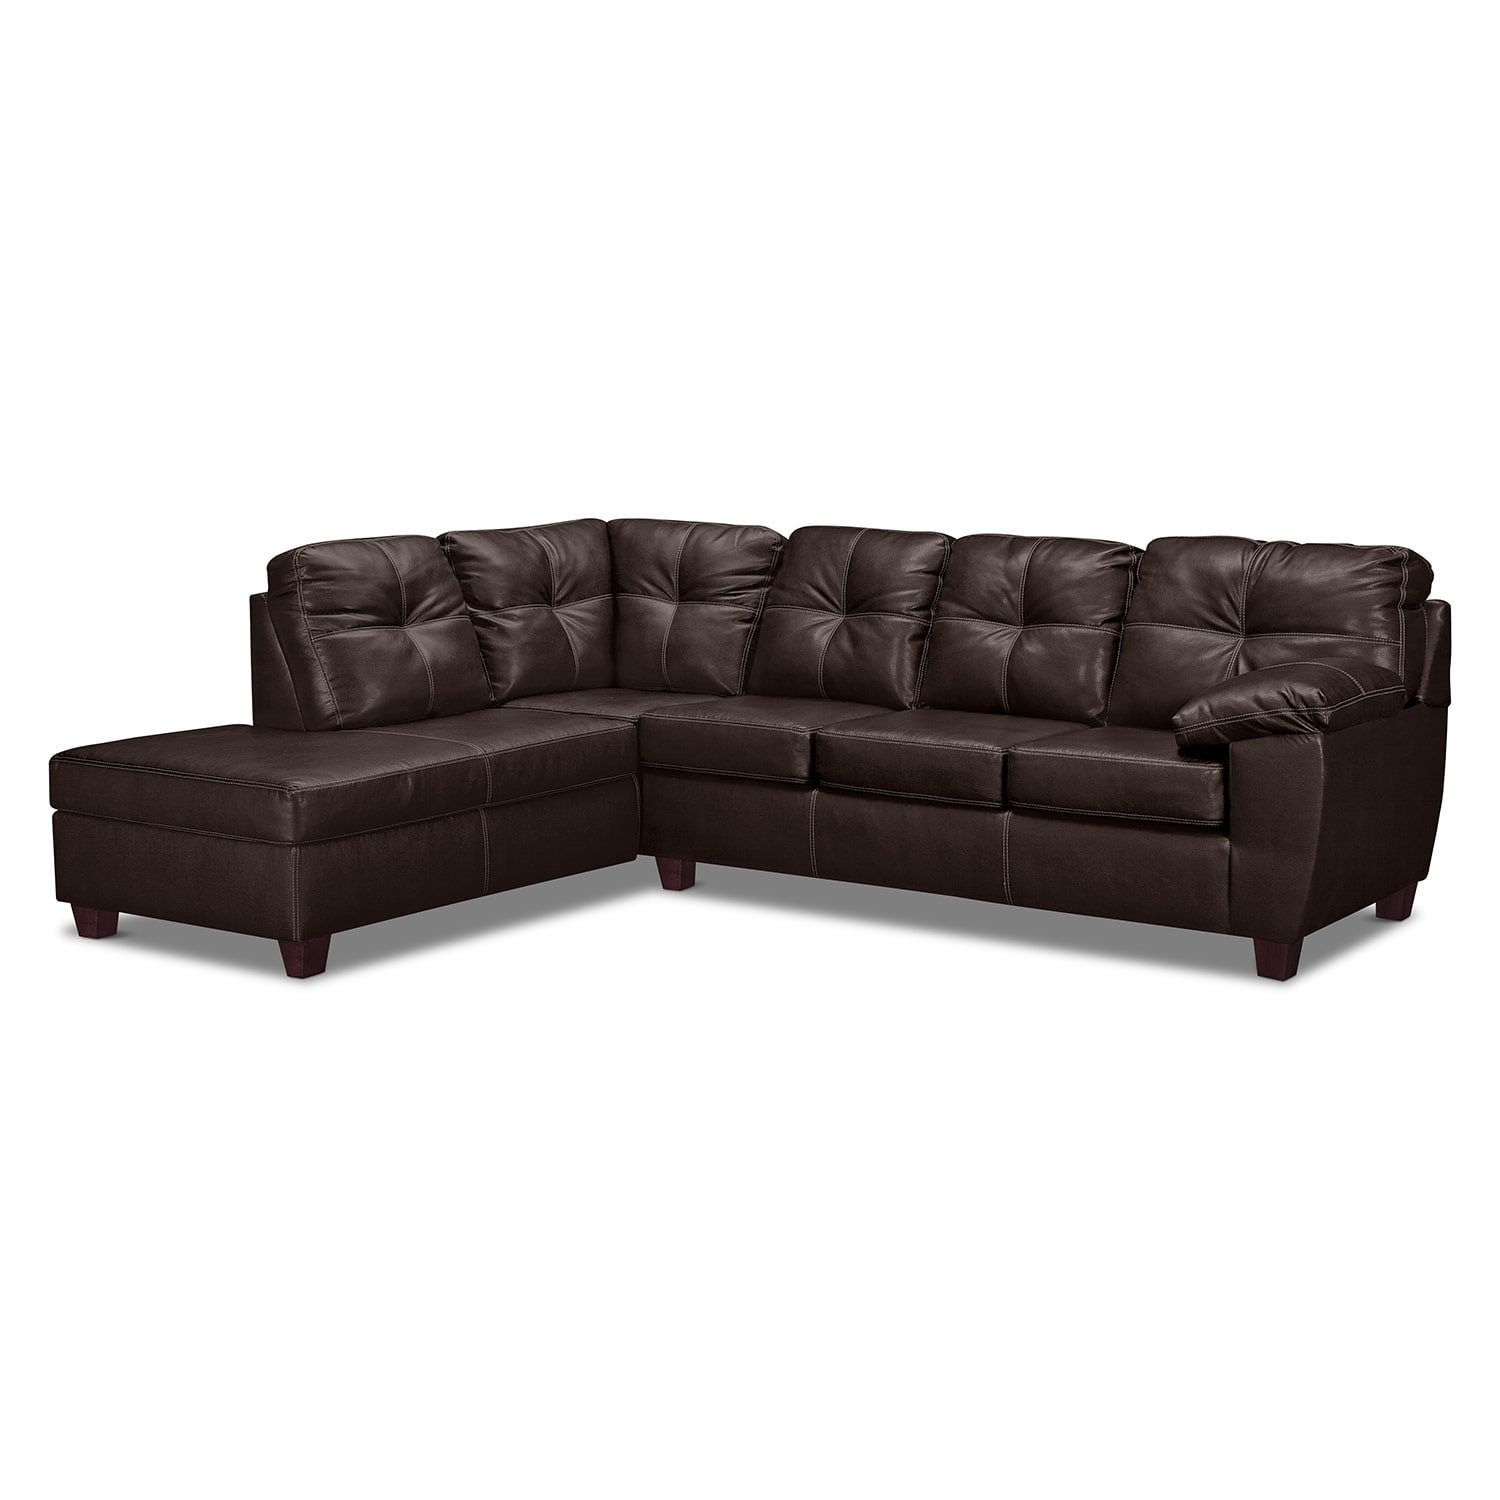 Living Room Furniture - Rialto 2-Piece Innerspring Sleeper Sectional with Left-Facing Chaise - Brown